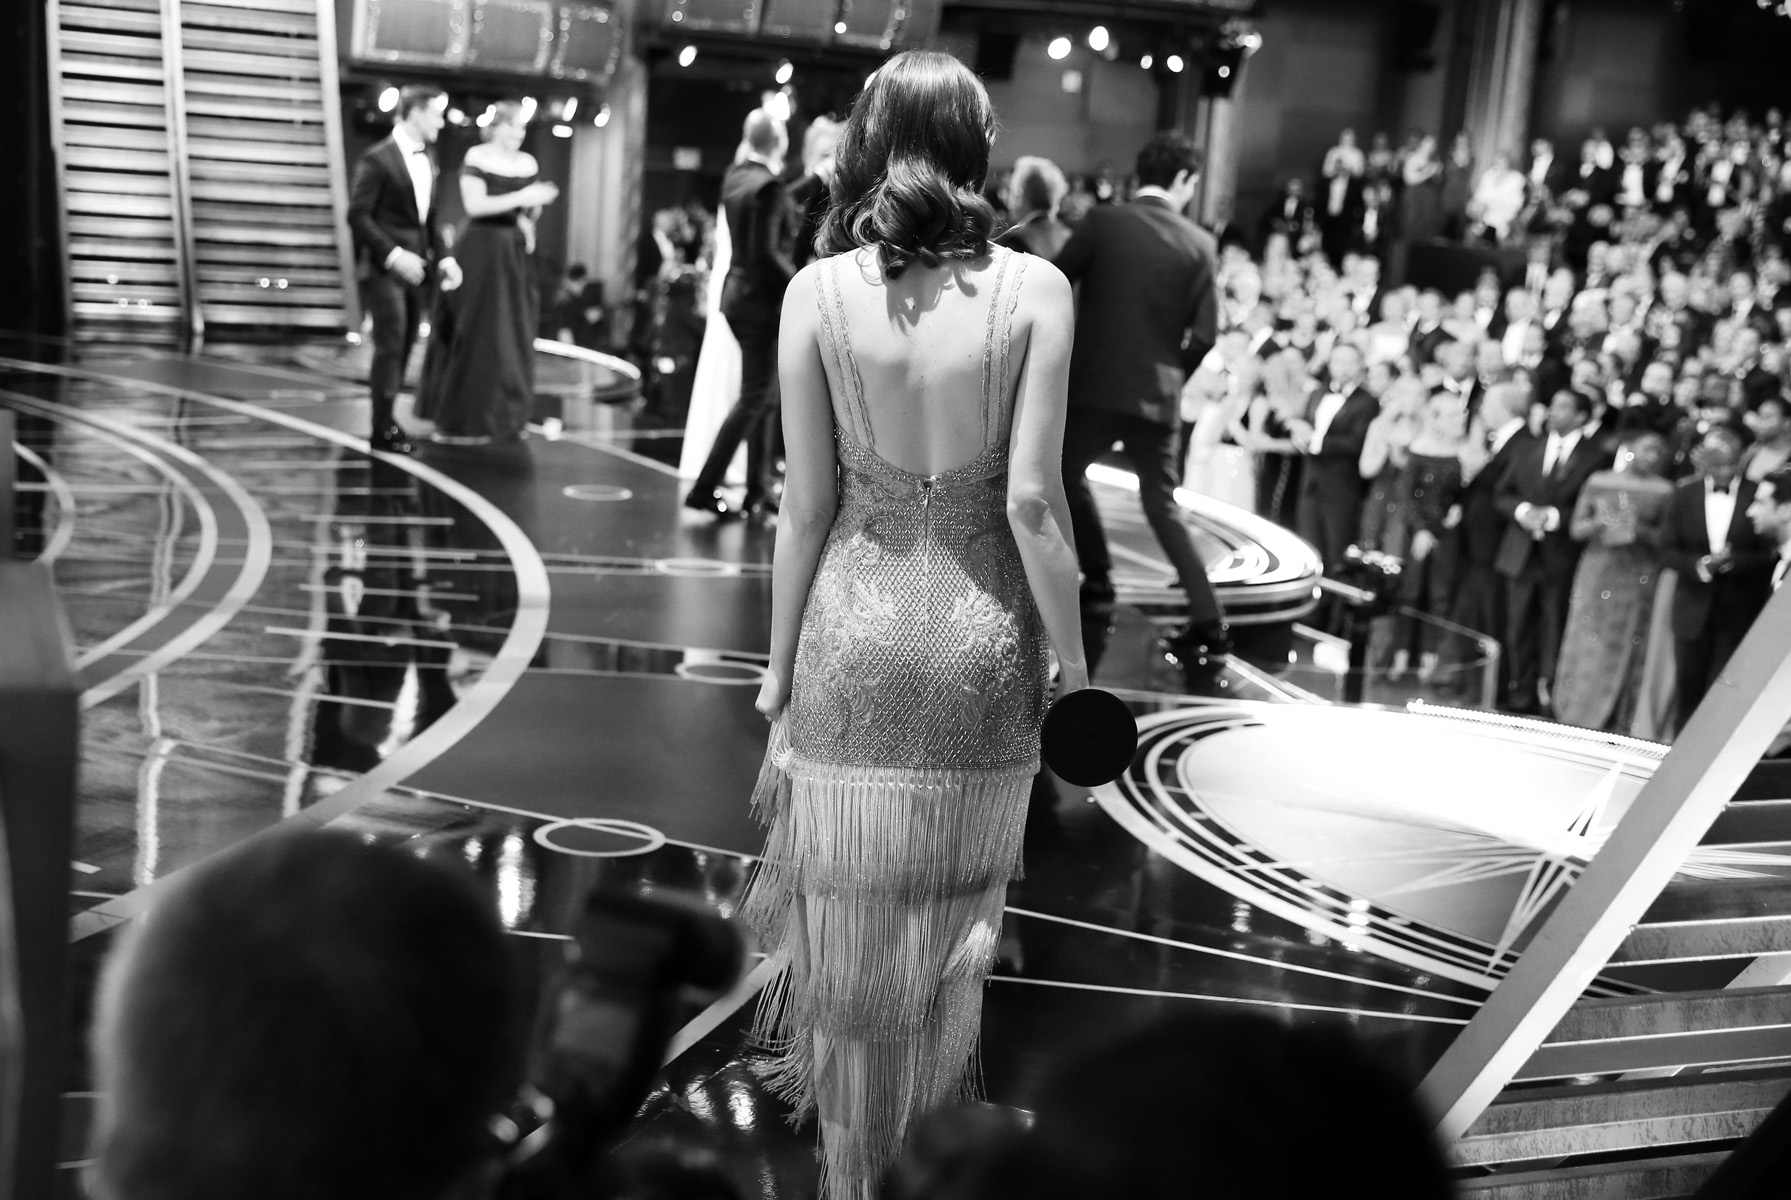 Emma Stone goes on stage with the cast of {quote}La La Land{quote} at the Oscars on Sunday, Feb. 26, 2017, at the Dolby Theatre in Los Angeles.  (Photo by Matt Sayles/Invision/AP)